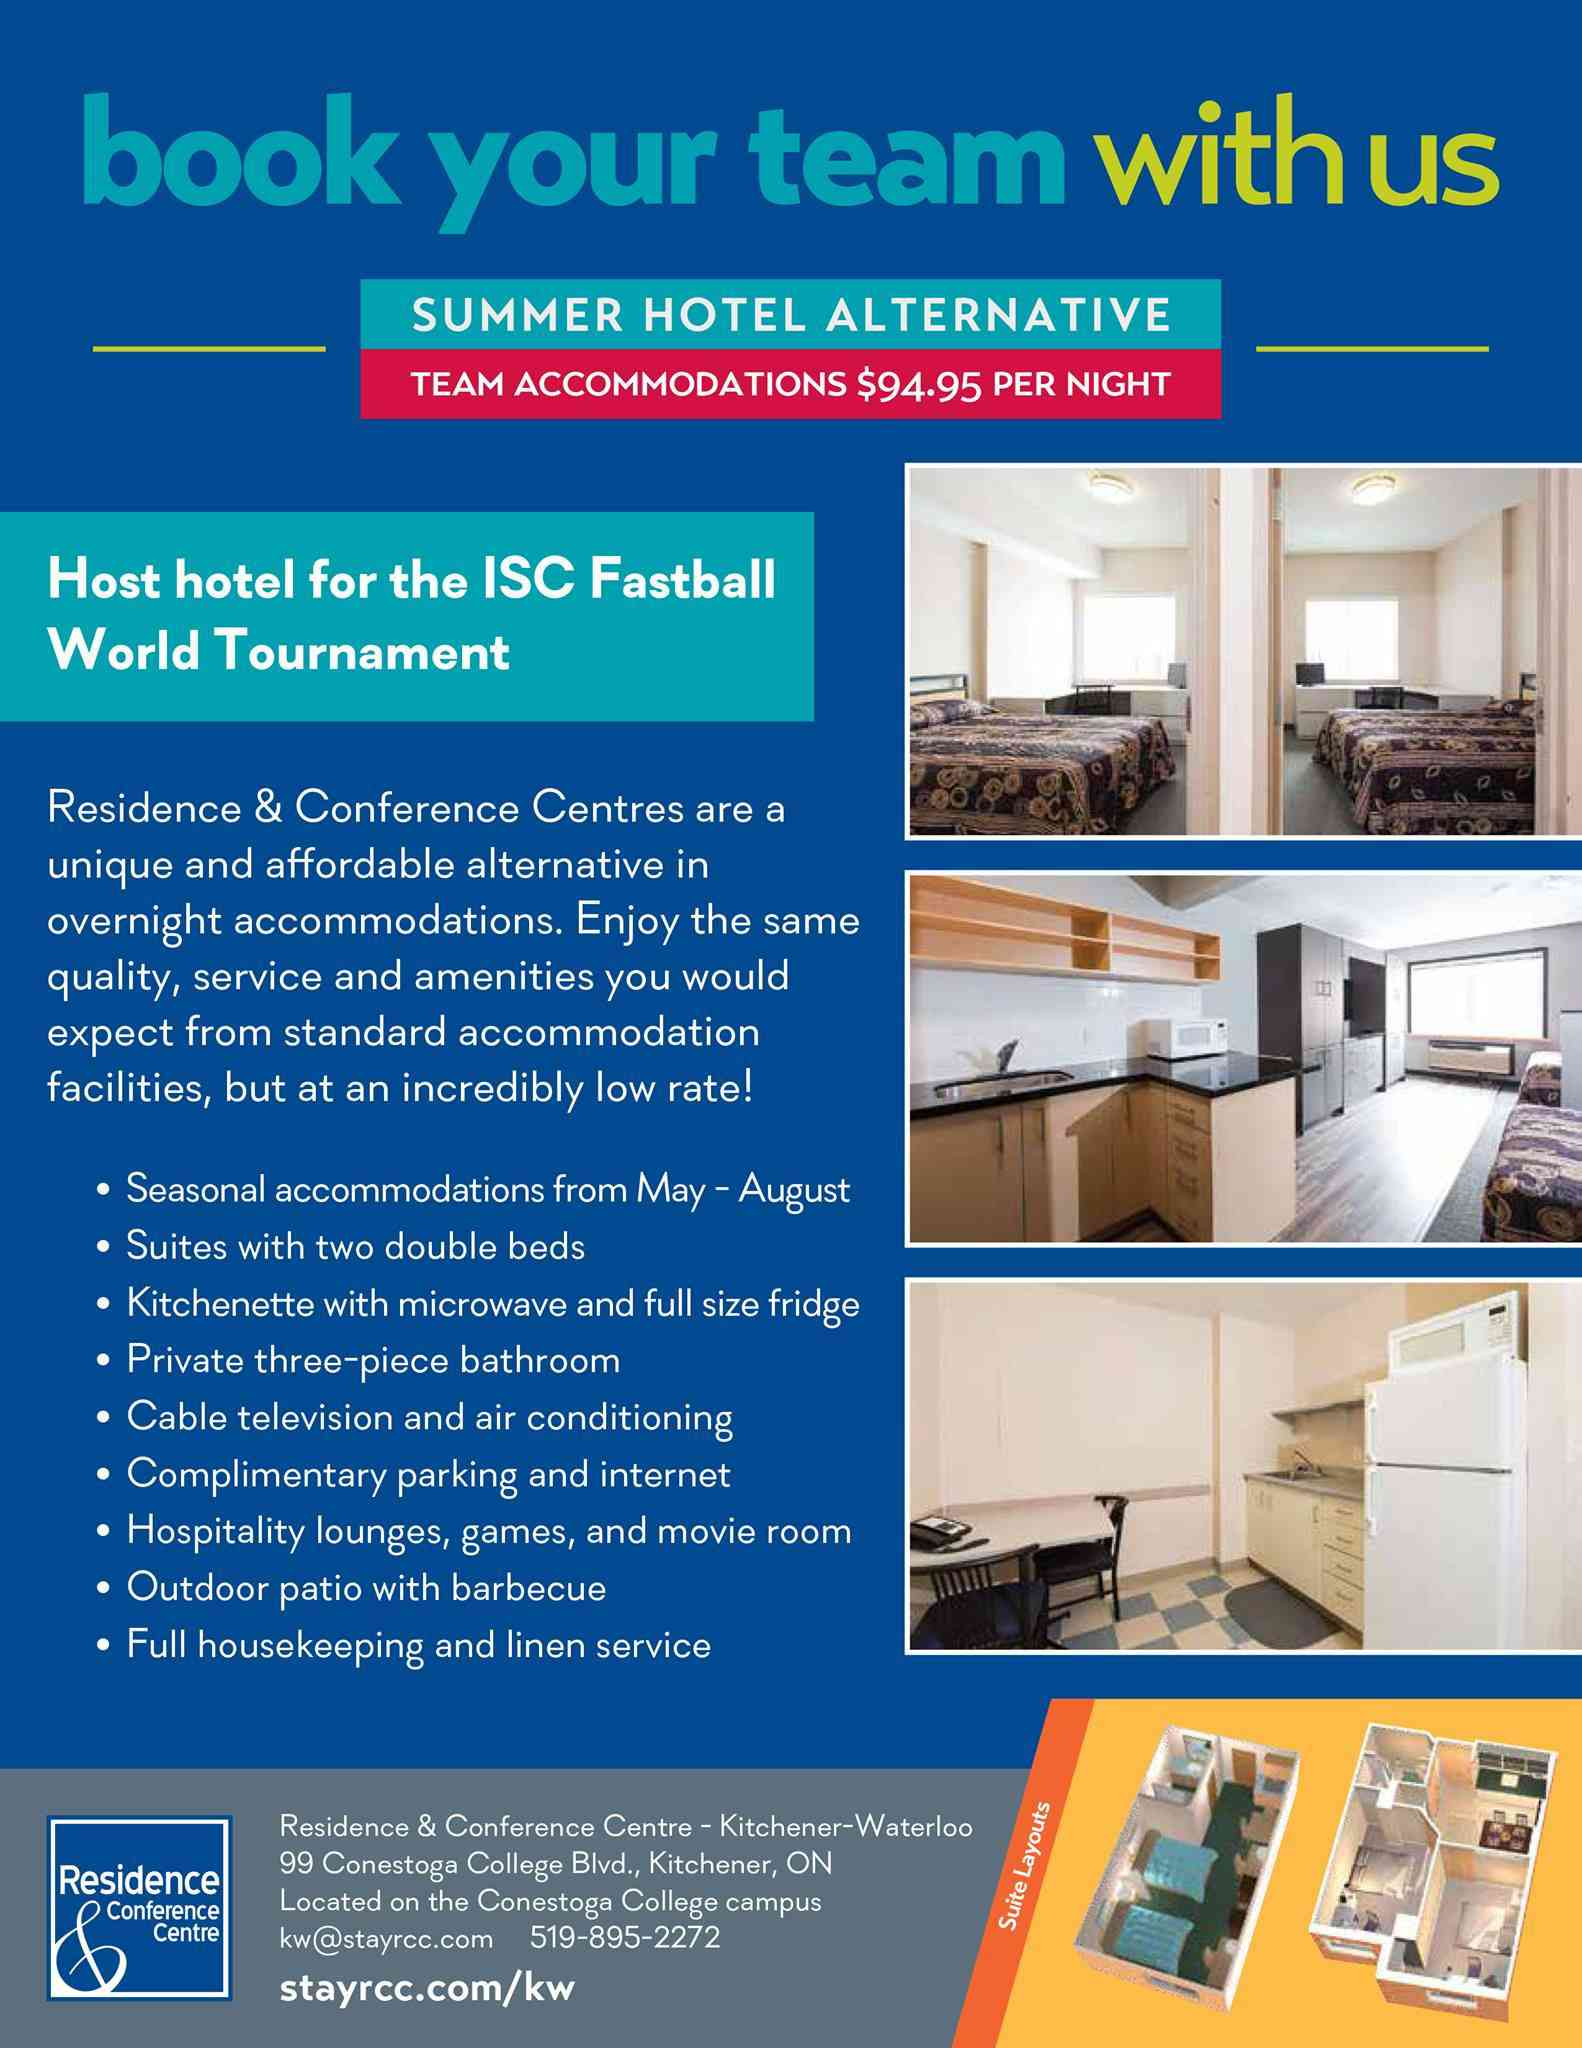 Another lodging option for this August at the ISCWT